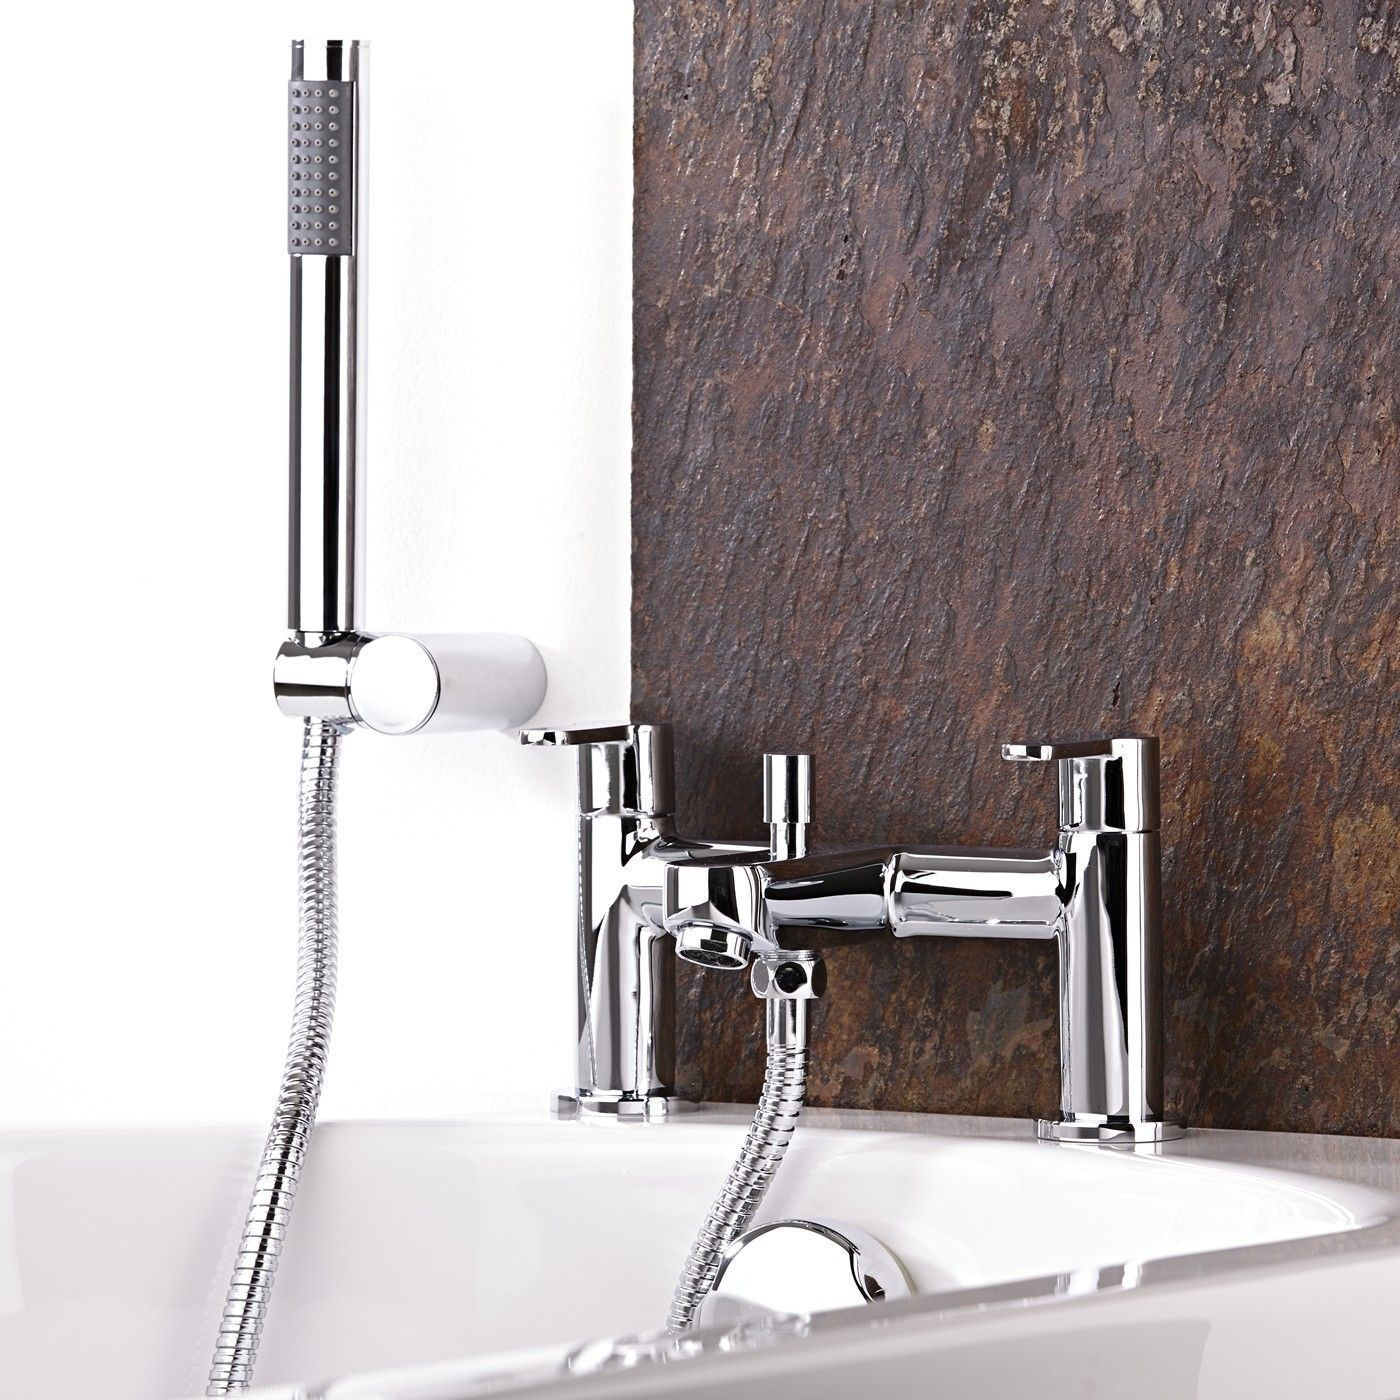 The Newbury tub shower mixer faucet features a modern design and a chrome finish